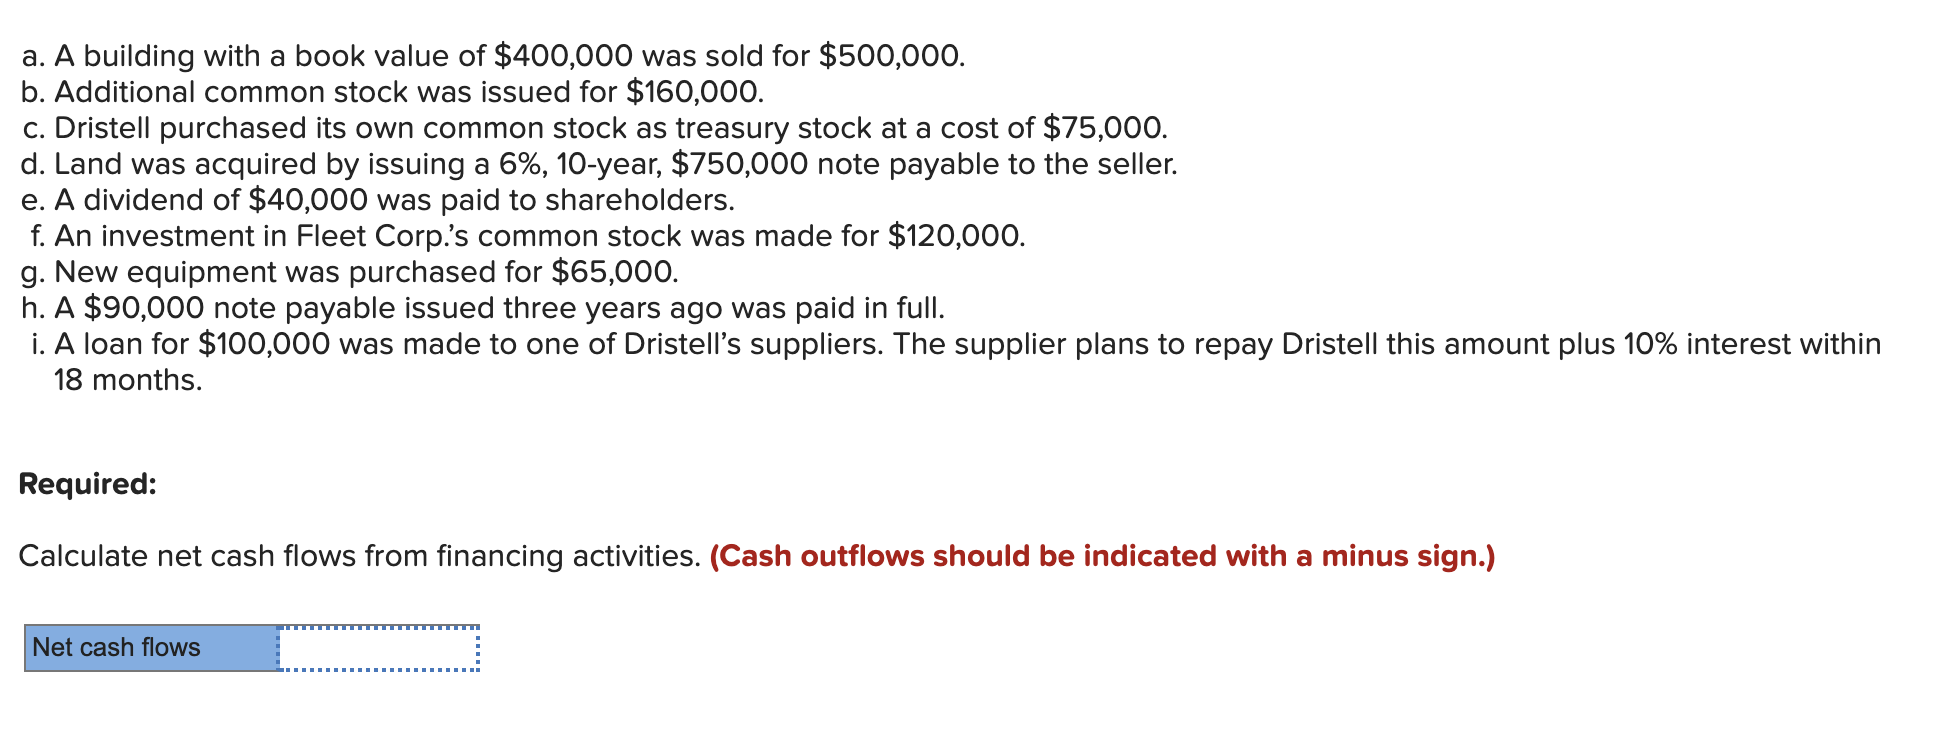 a. A building with a book value of $400,000 was sold for $500,000 b. Additional common stock was issued for $160,000. c. Dristell purchased its own common stock as treasury stock at a cost of $75,000. d. Land was acquired by issuing a 6%, 10-year, $750,000 note payable to the seller. e. A dividend of $40,000 was paid to shareholders. f. An investment in Fleet Corp.'s common stock was made for $120,000. g. New equipment was purchased for $65,000. h. A $90,000 note payable issued three years ago was paid in full. i. A loan for $100,000 was made to one of Dristell's suppliers. The supplier plans to repay Dristell this amount plus 10% interest within 18 months. Required: Calculate net cash flows from financing activities. (Cash outflows should be indicated with a minus sign.) Net cash flows